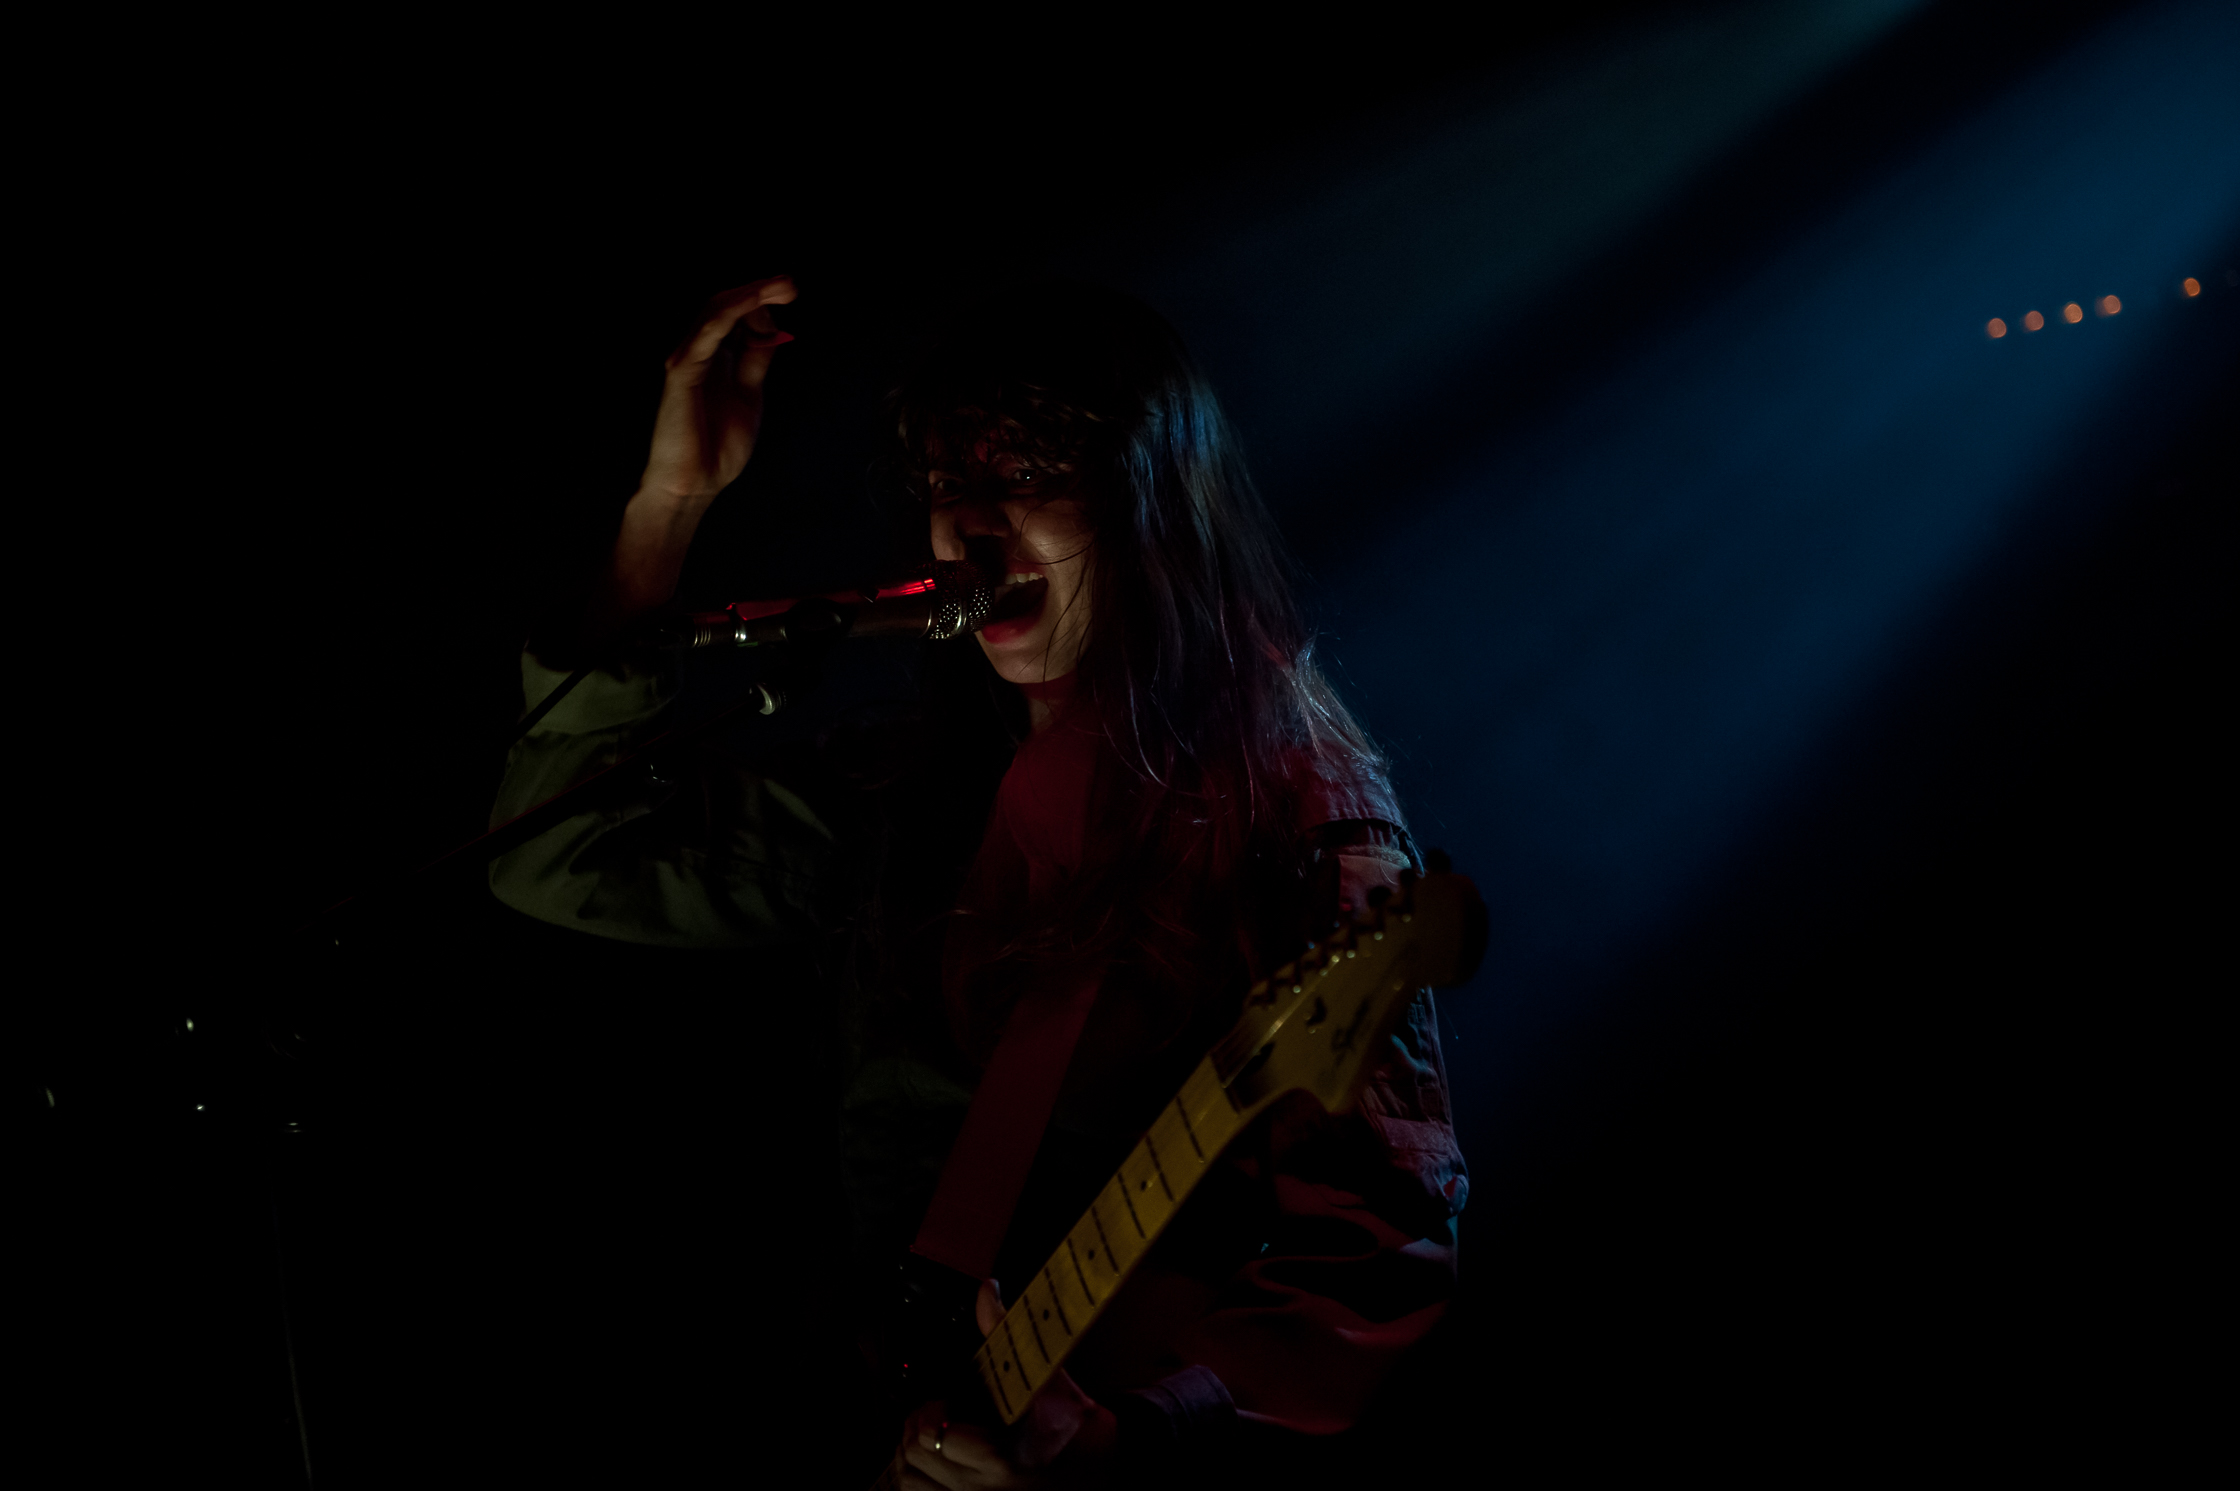 2016_09_23_arteather_lebutcherettes-1268